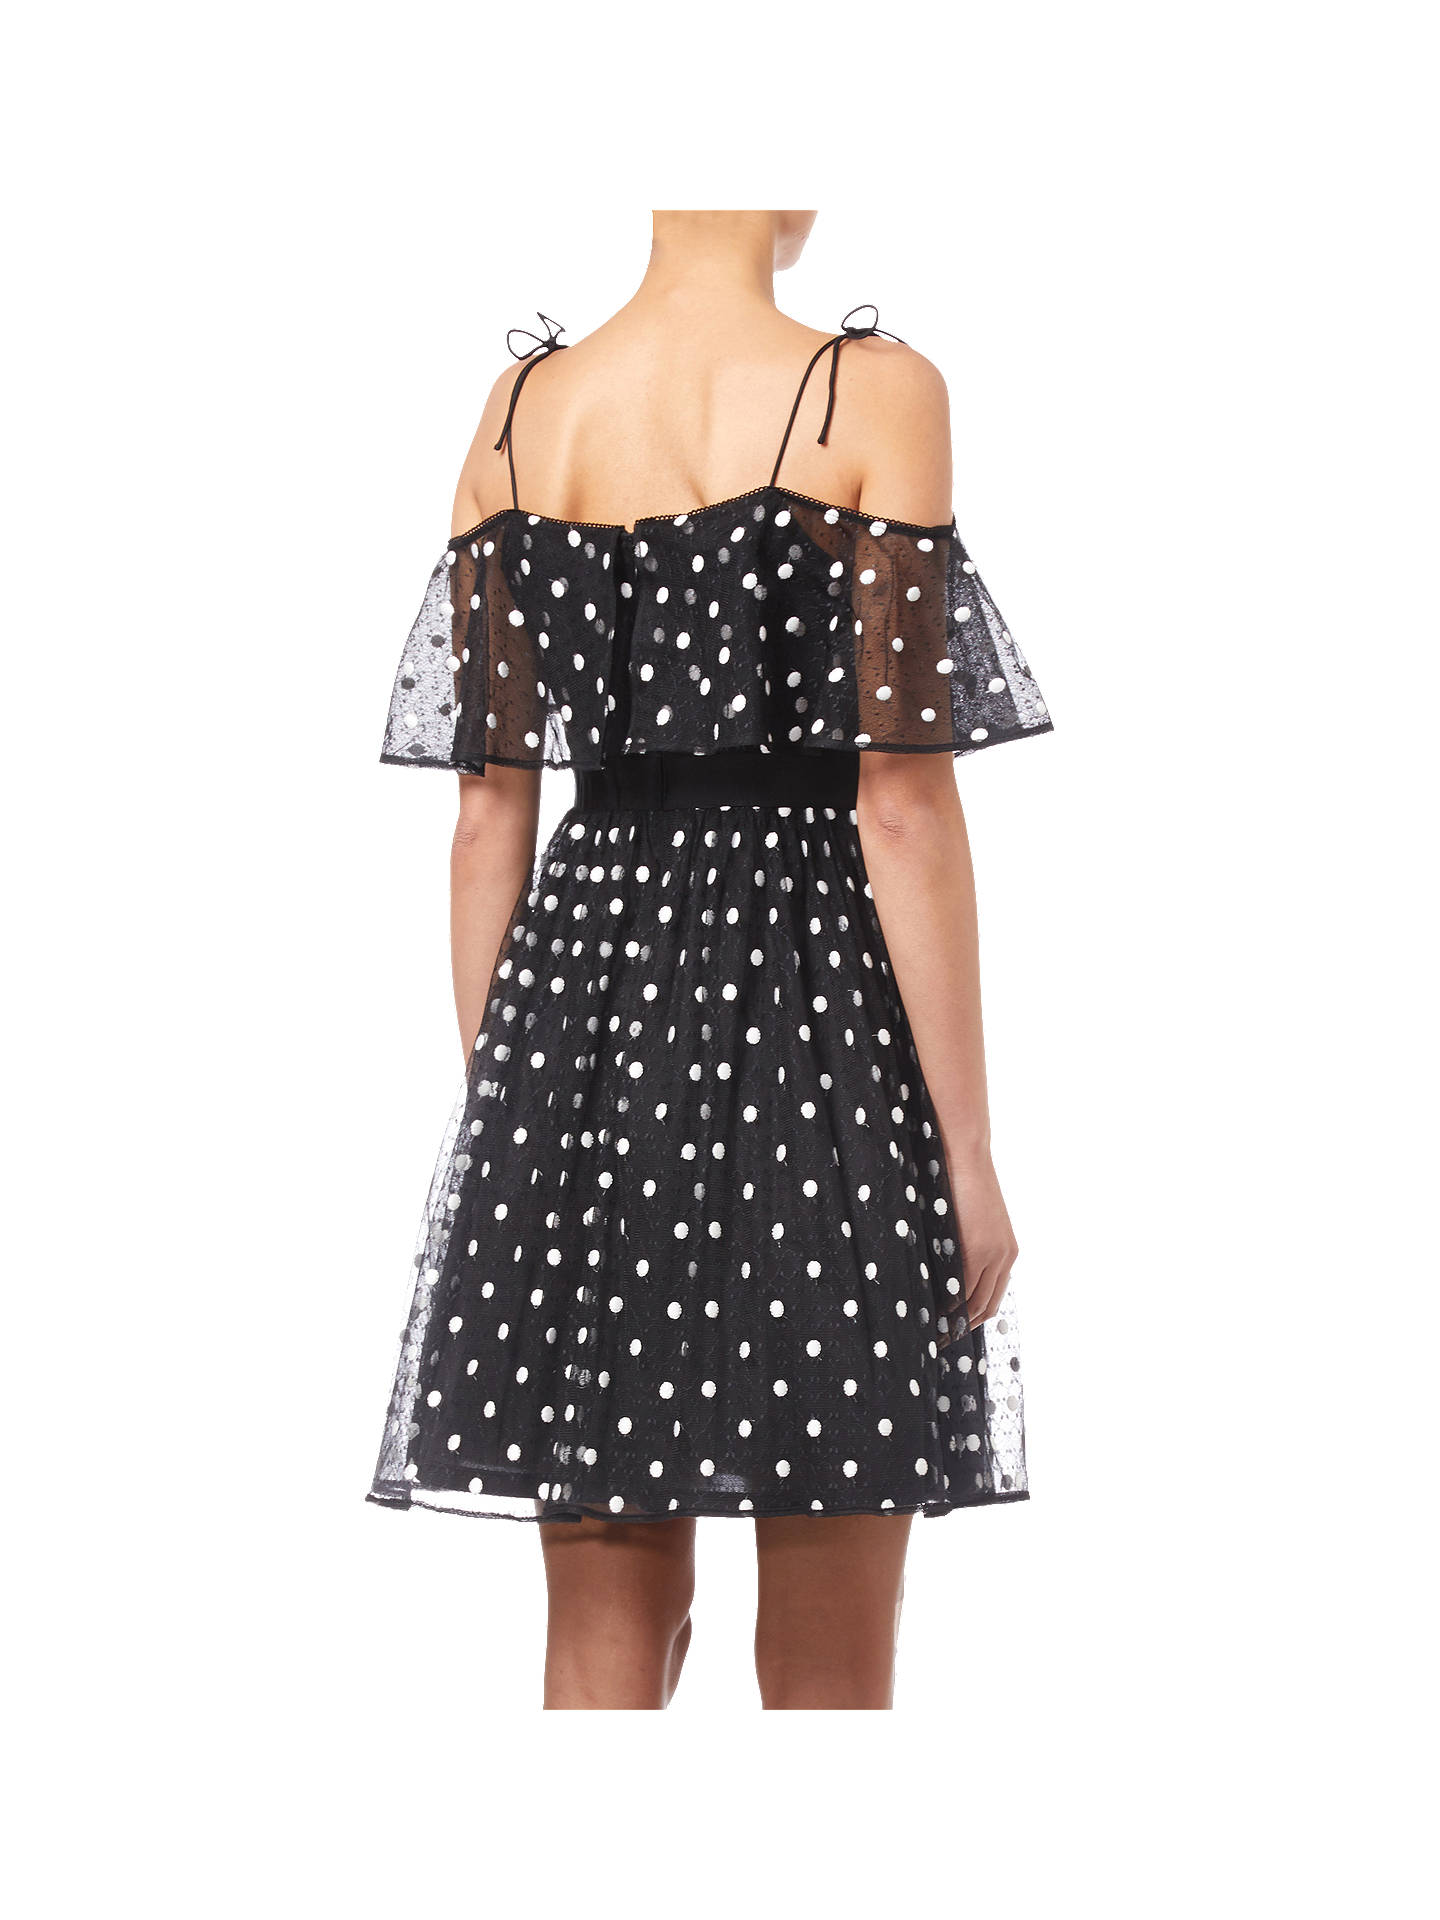 BuyAdrianna Papell Spot Pleated Tulle Dress, Black/White, 8 Online at johnlewis.com